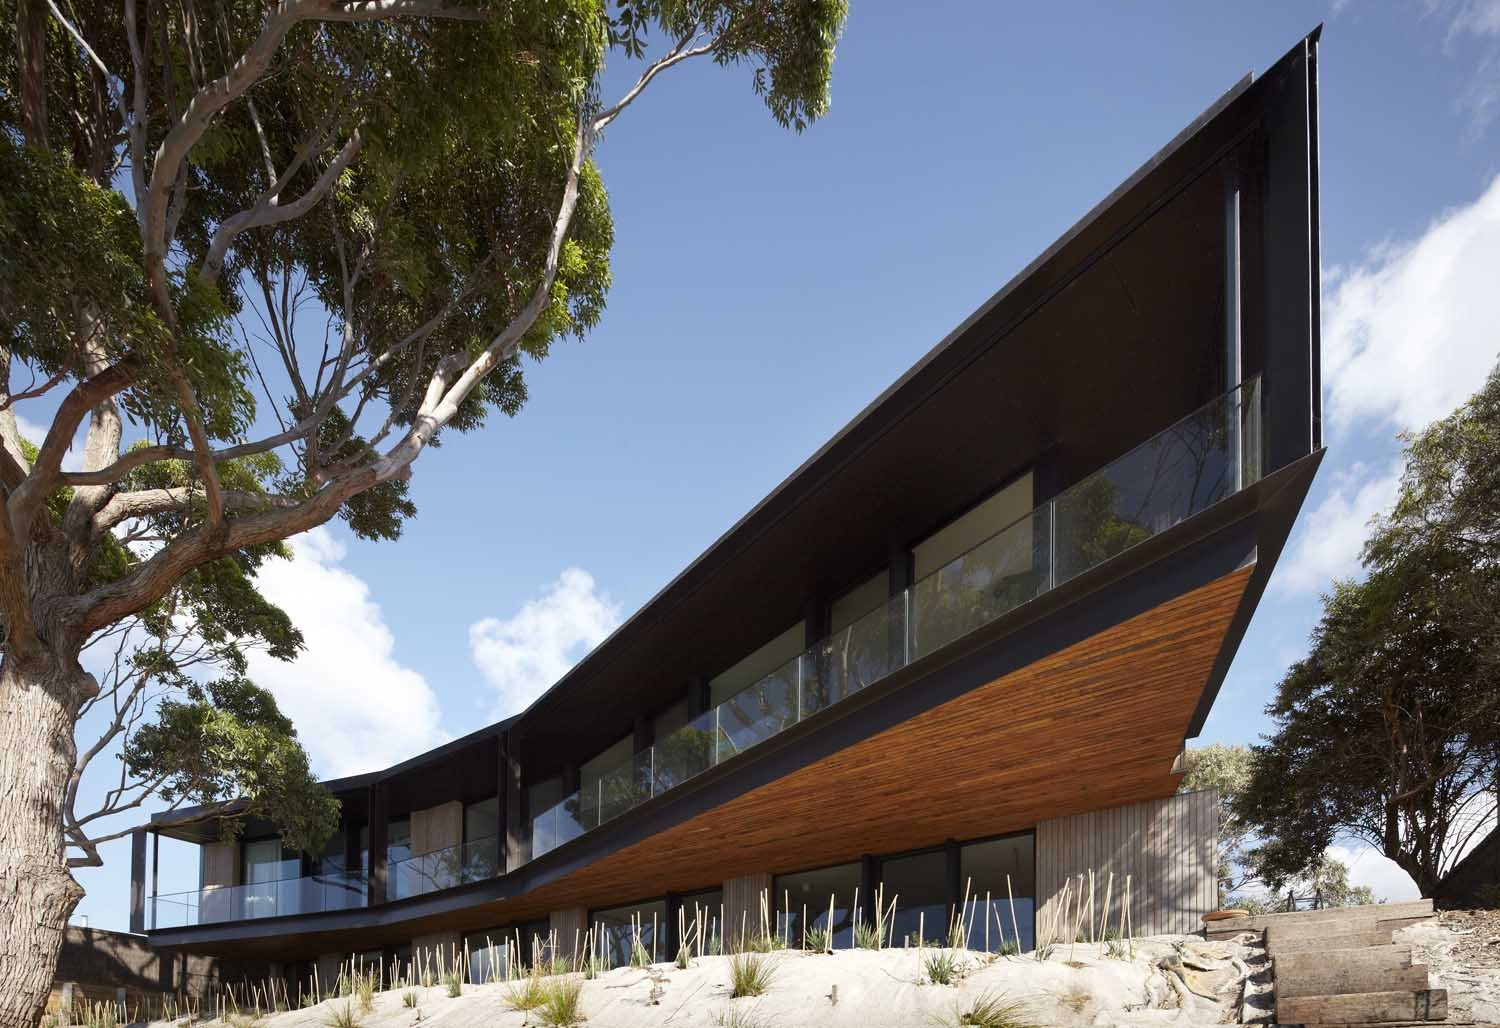 Bluff House / Inarc Architects, © Peter Clarke